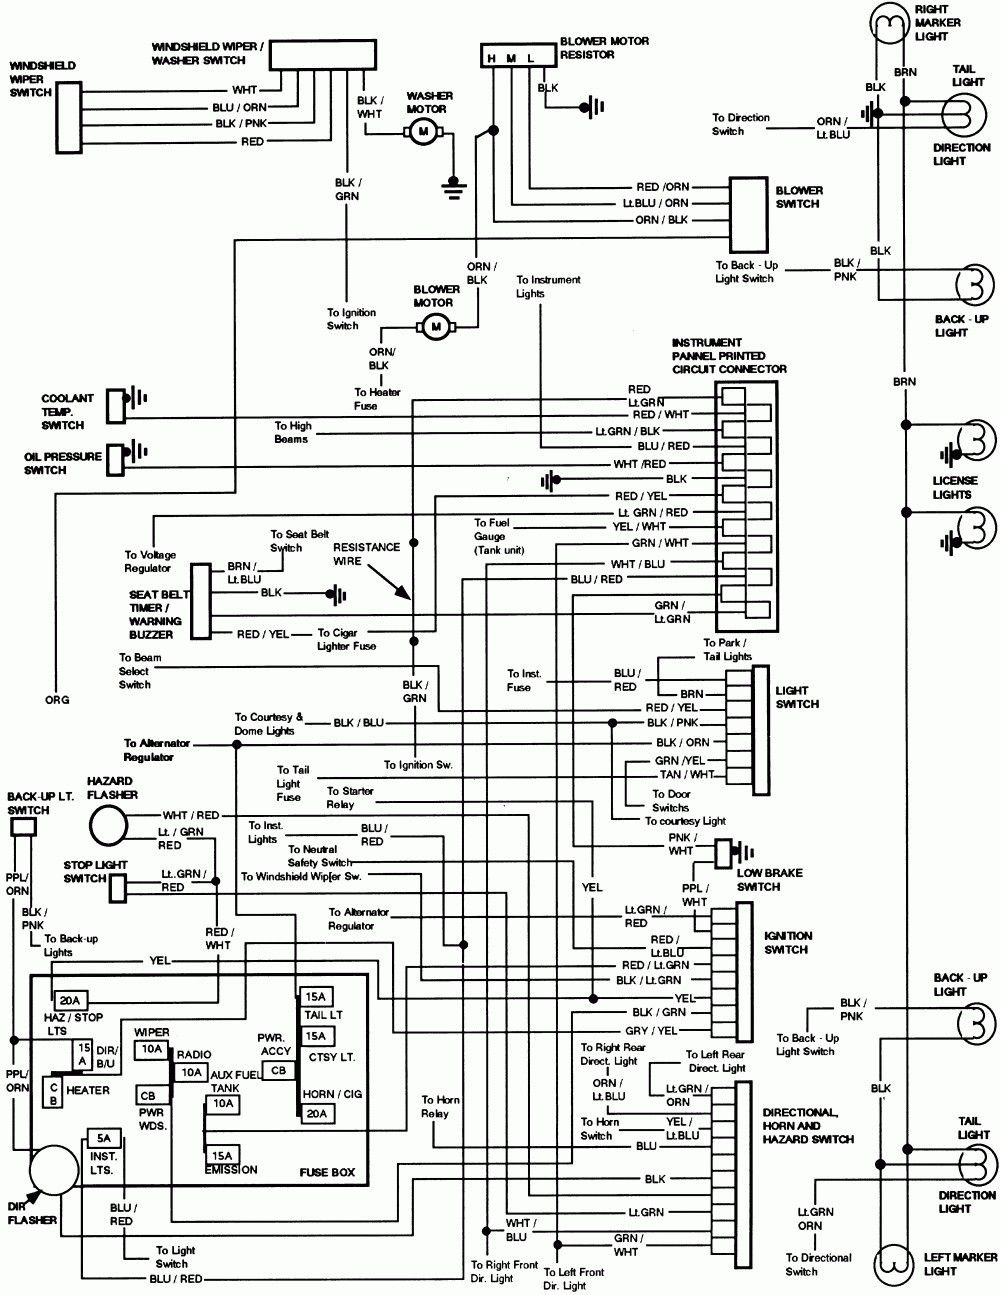 1999 Ford F250 Wiring Diagram Unique Diagram Design Ford F150 Trailer Wiring Diagram